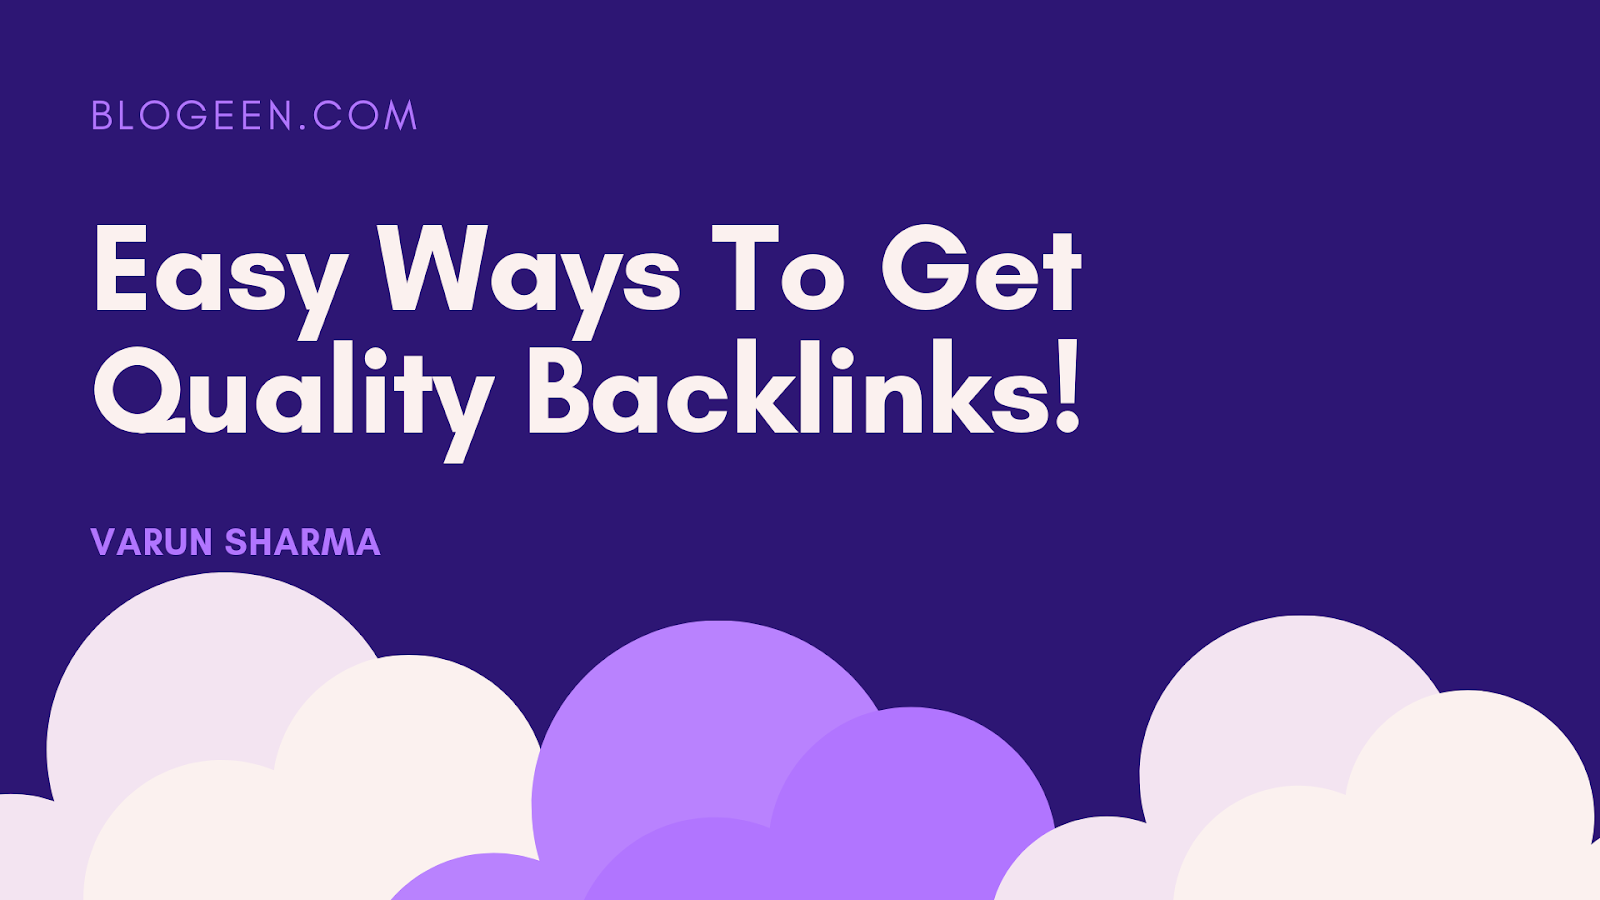 Easy Ways To Get Quality Backlinks For Your Blog/Websites